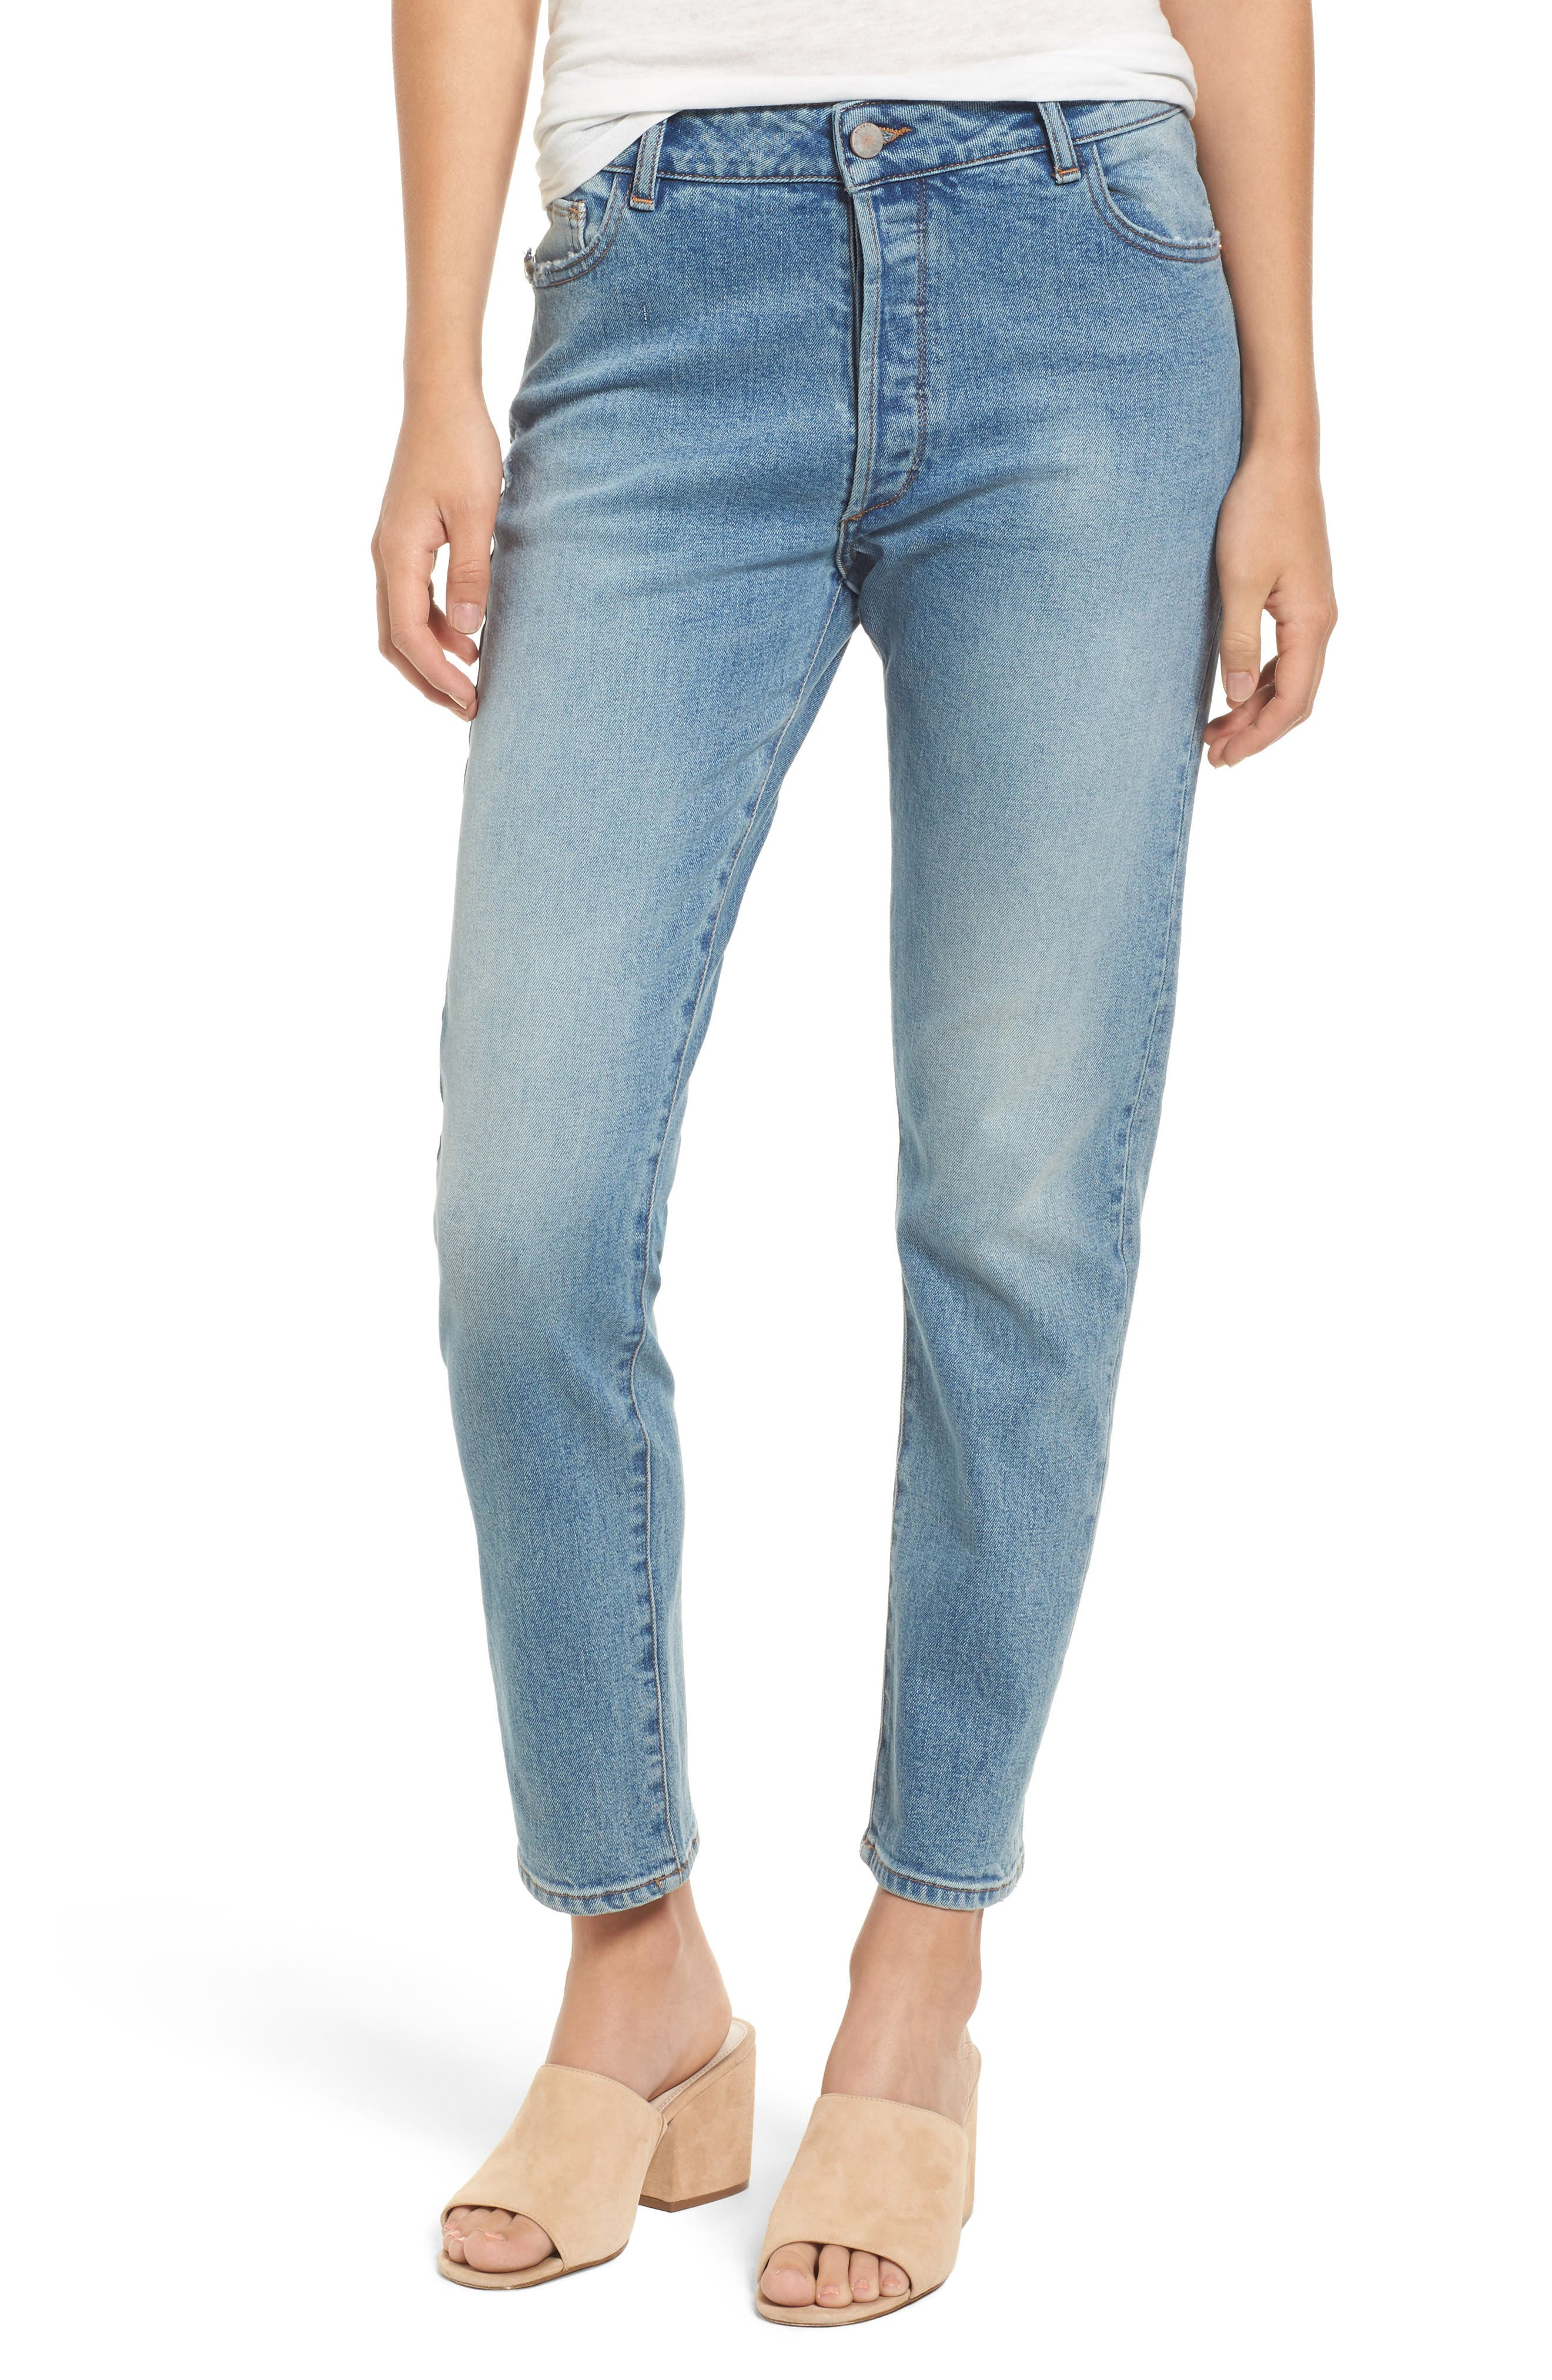 Alternate Image 1 Selected - DL1961 Bella High Waist Ankle Skinny Jeans (Sonata)